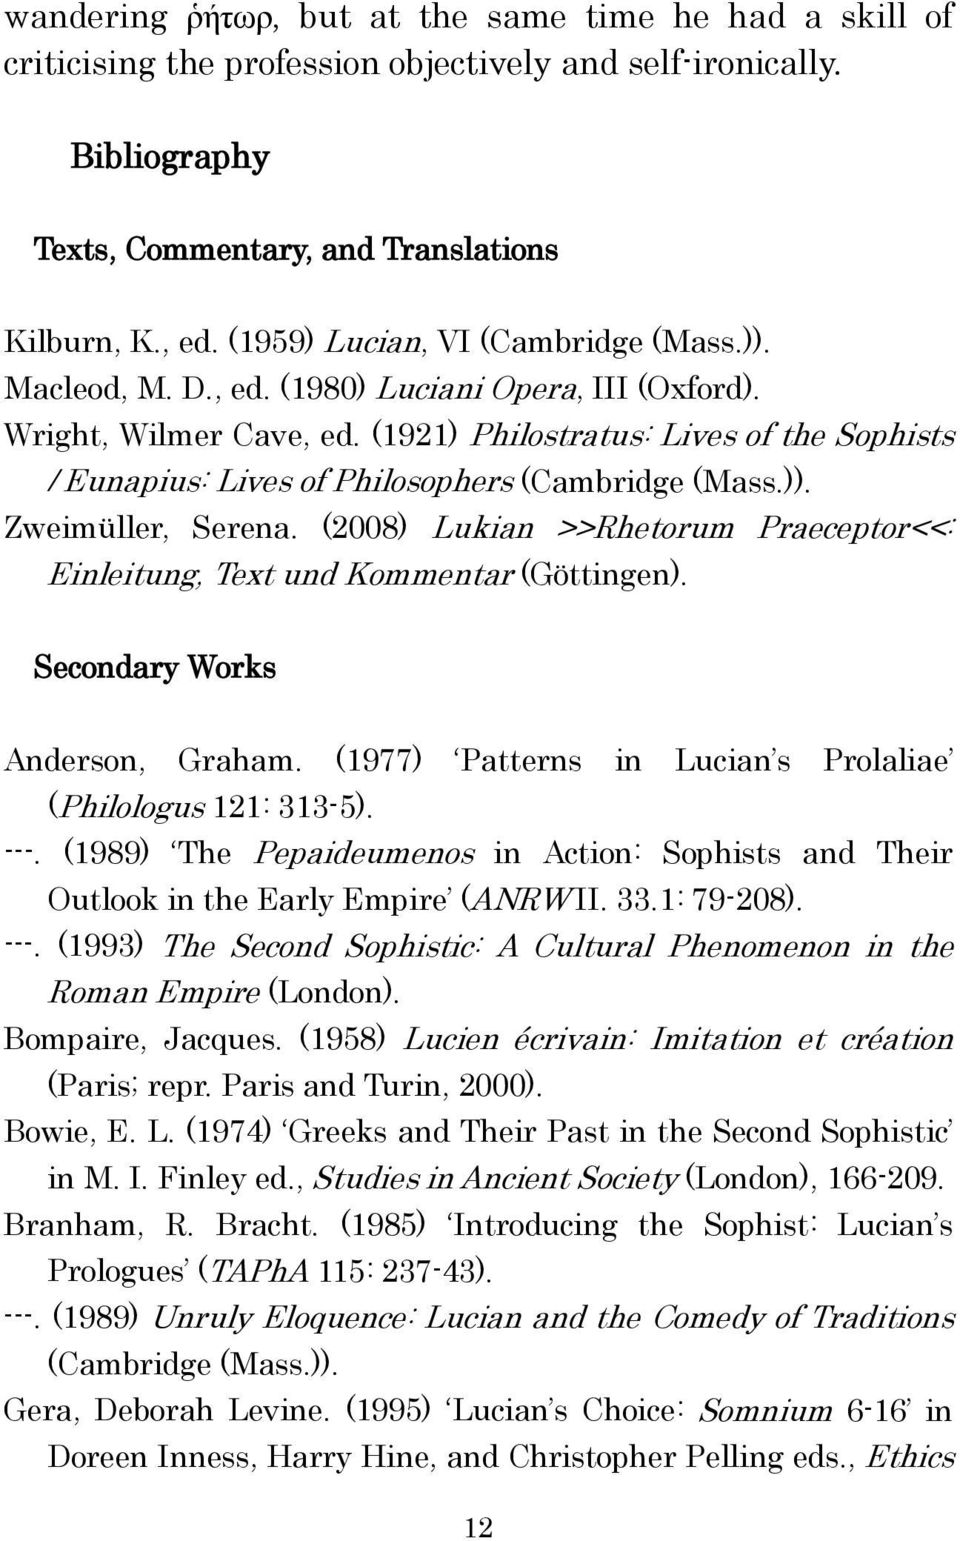 (1921) Philostratus: Lives of the Sophists / Eunapius: Lives of Philosophers (Cambridge (Mass.)). Zweimüller, Serena. (2008) Lukian >>Rhetorum Praeceptor<<: Einleitung, Text und Kommentar (Göttingen).